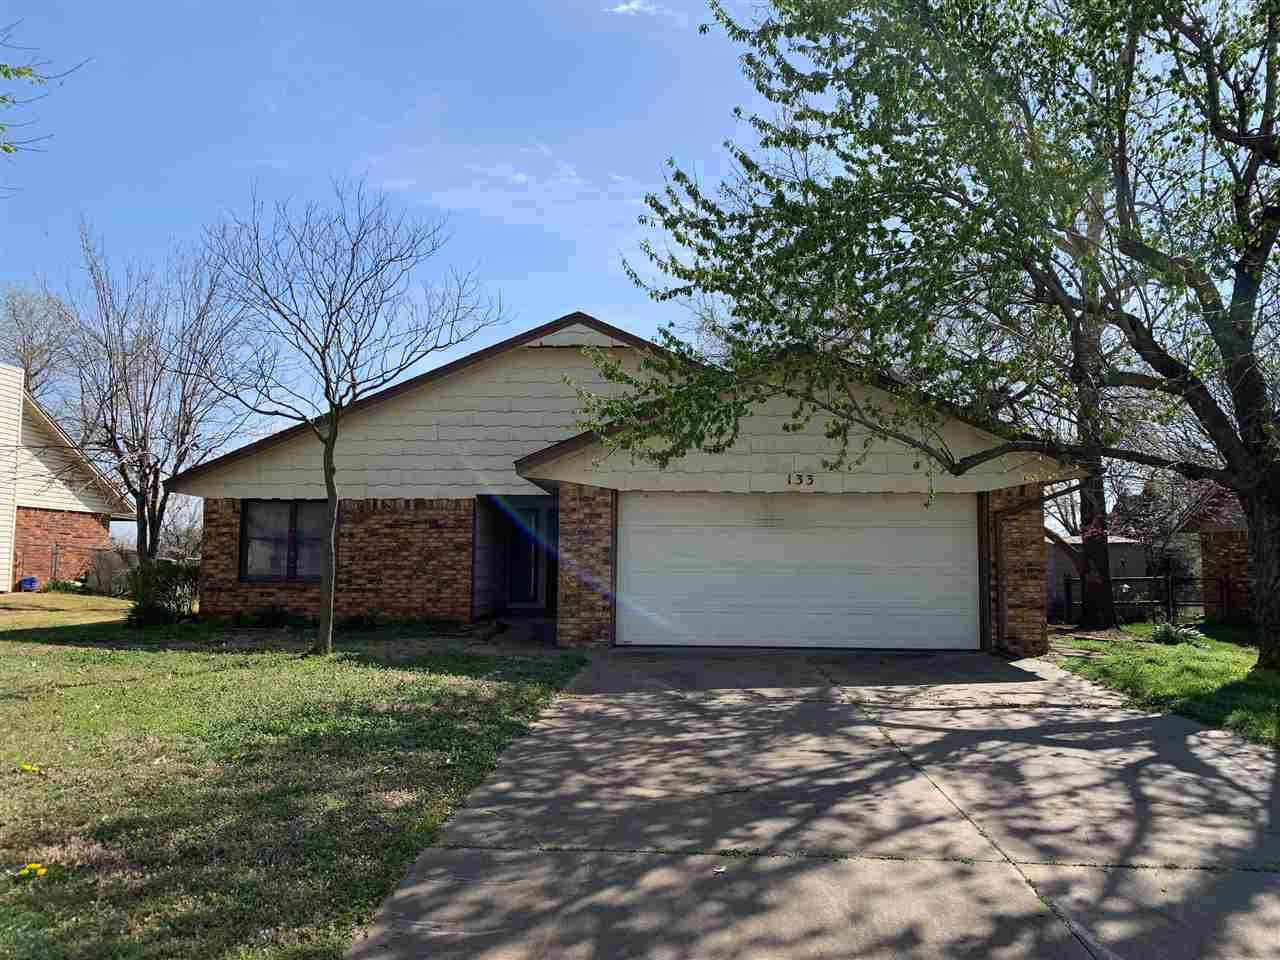 Bring your design ideas and your toolbox and make this fixer-upper your own! 3 Bed, 2 bath, inviting floor plan. Located in Parkview Estates, backs up to green space, has access to neighborhood pool and walking trail to Boomer Lake. Walk or short drive to Richmond elementary, close to turnpike, shopping and eateries.